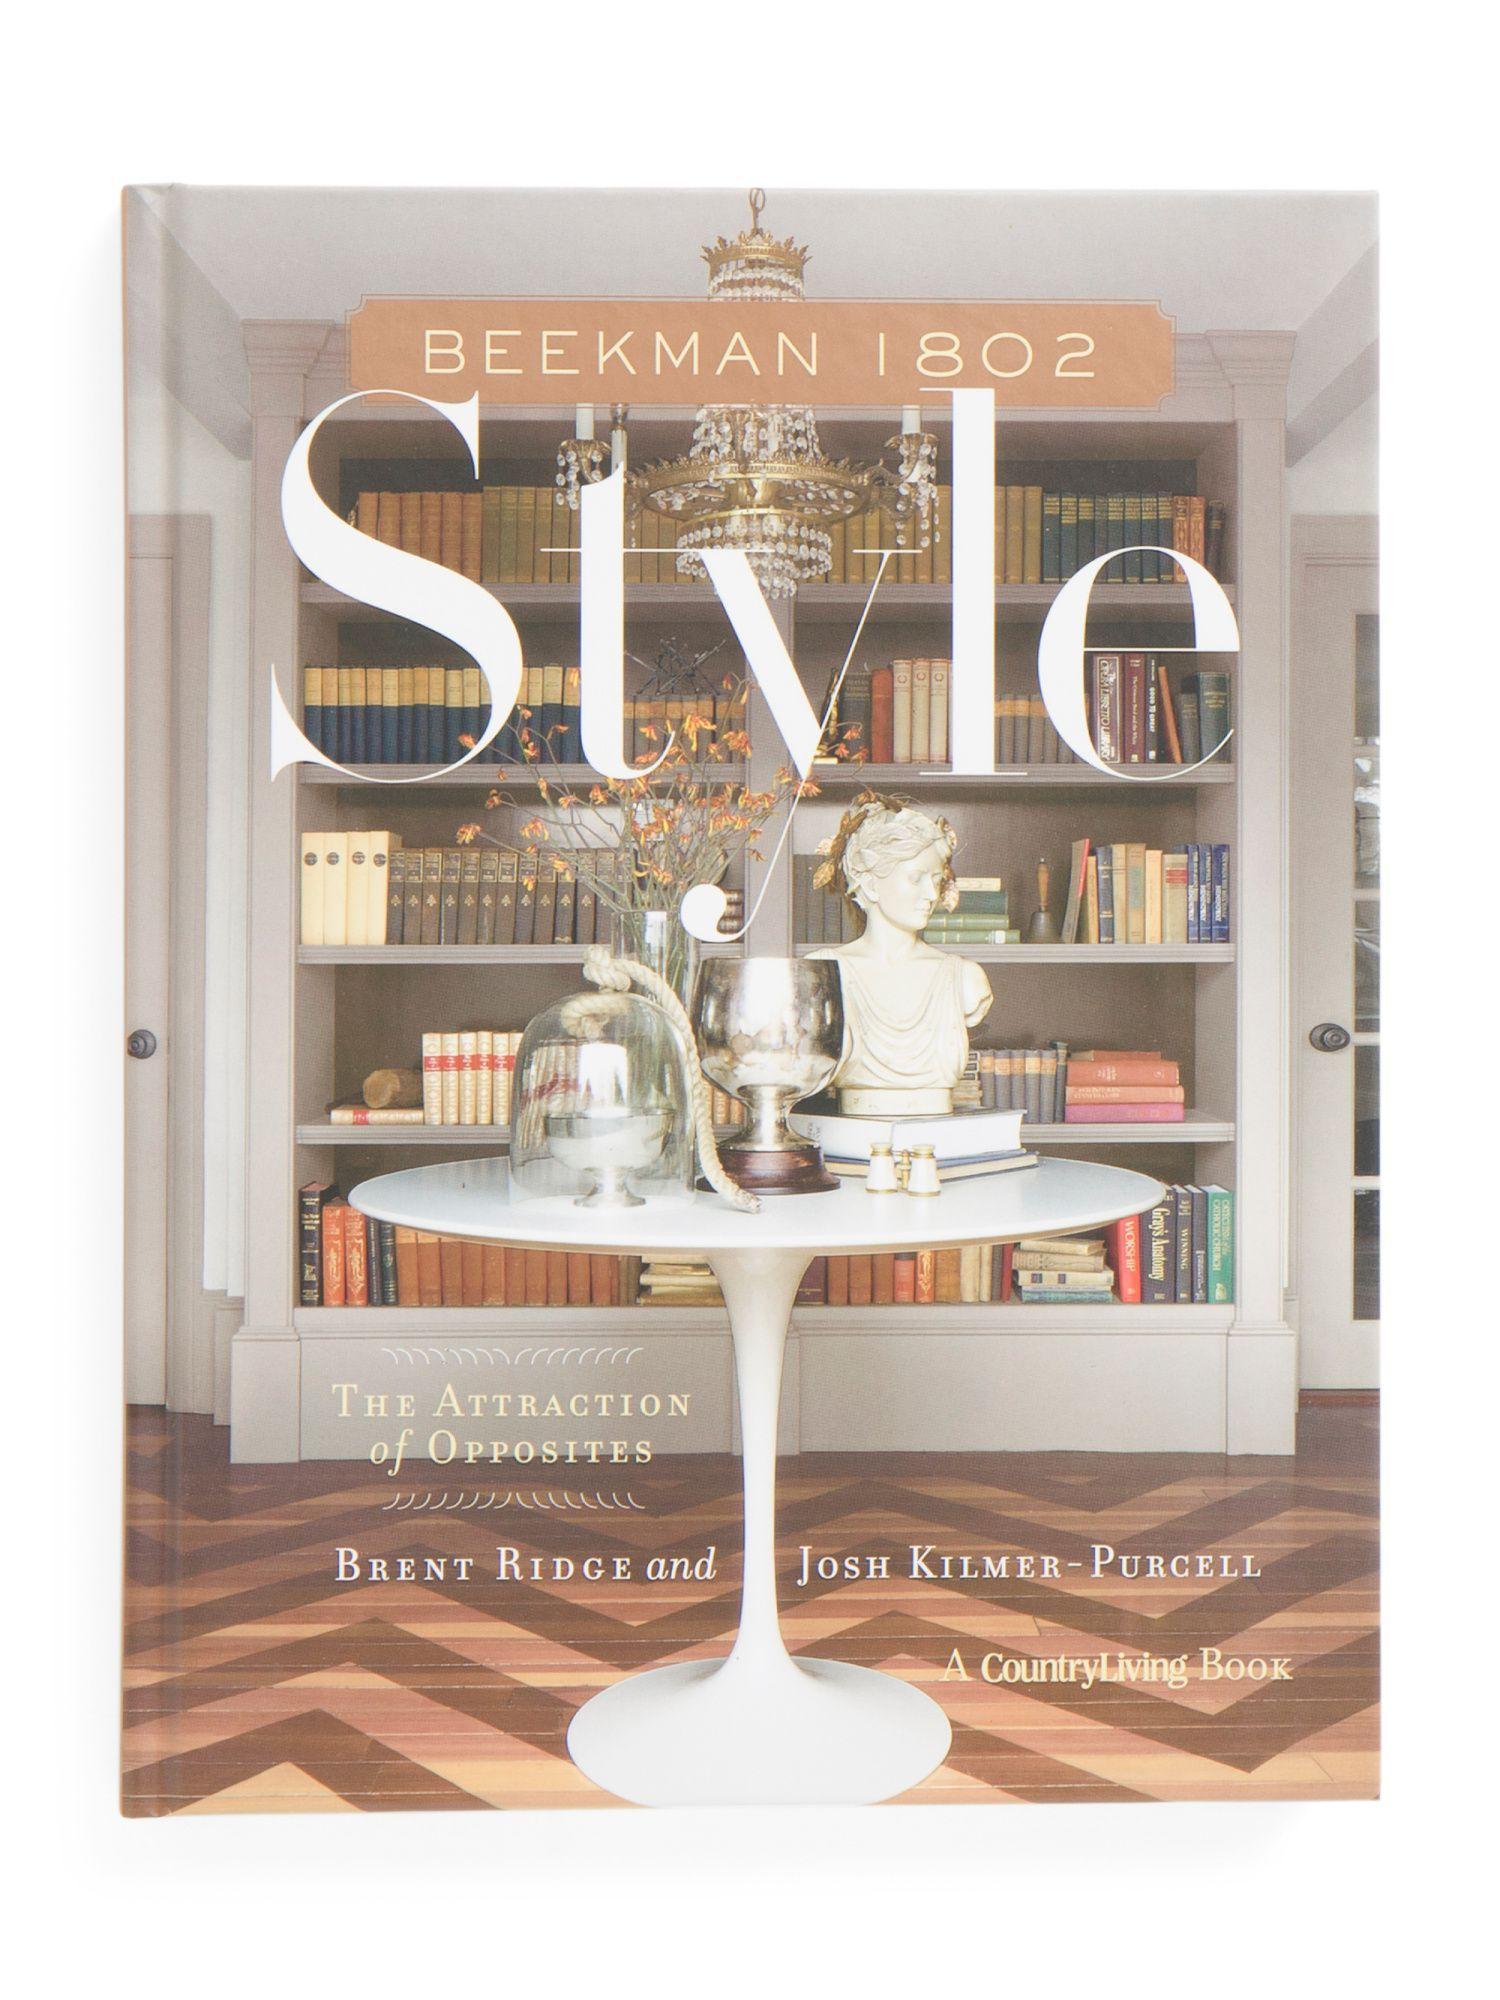 Beekman style coffee table book also products rh za pinterest